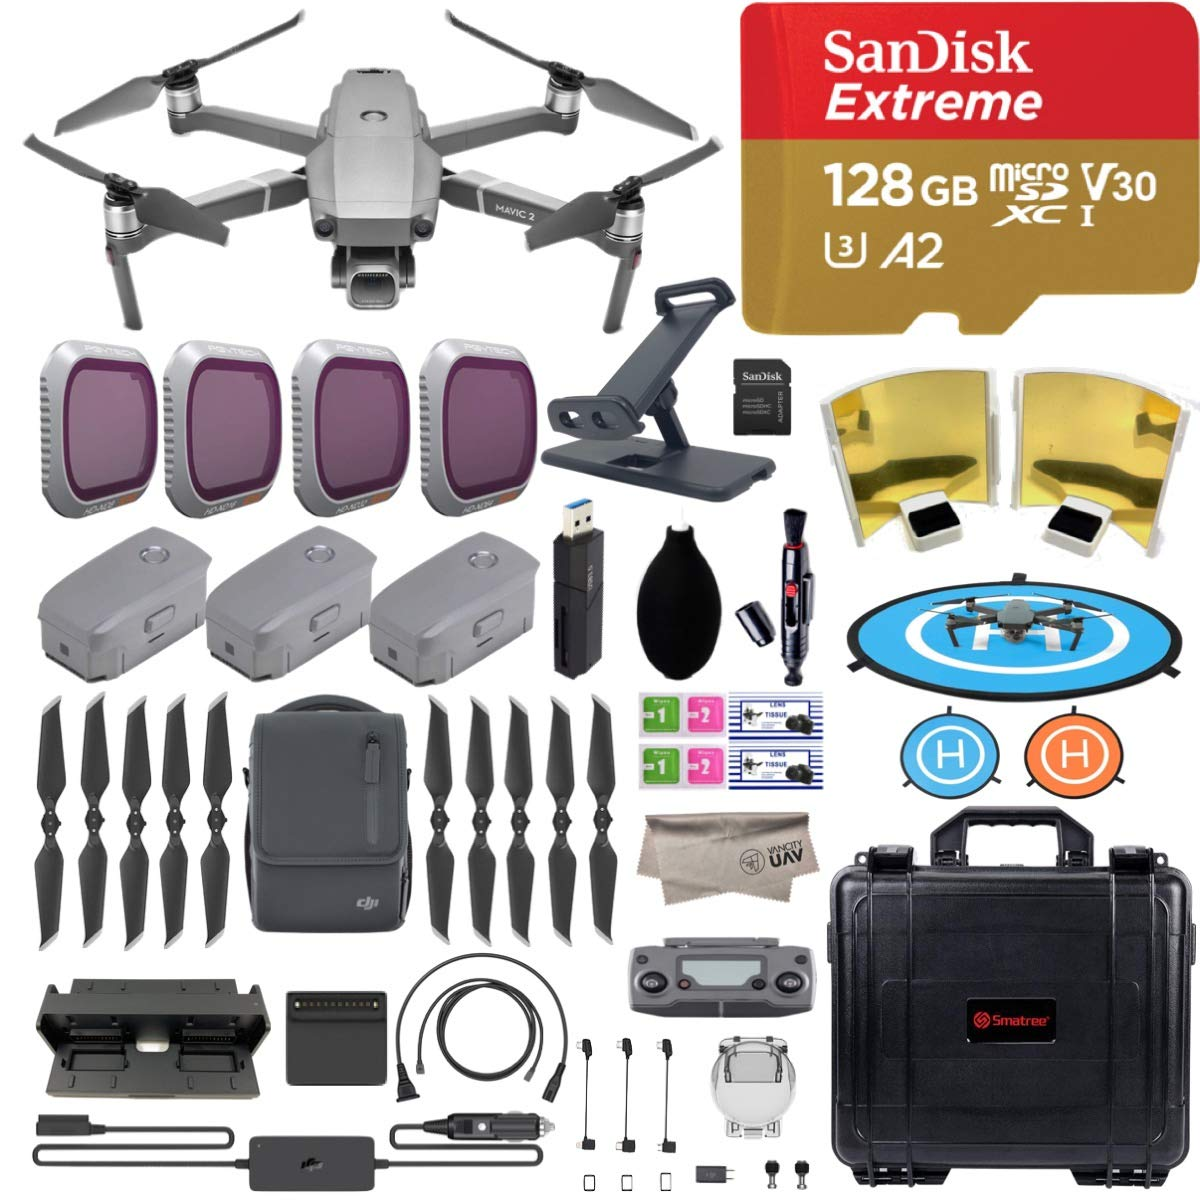 DJI Mavic 2 Pro Drone Quadcopter with Fly More Combo, Hasselblad Camera, 3 Batteries, PGY ND Filters & Pad Holder, 128GB Extreme Micro SD, Landing Pad, Signal Booster, Waterproof Hard Carrying Case by DJI